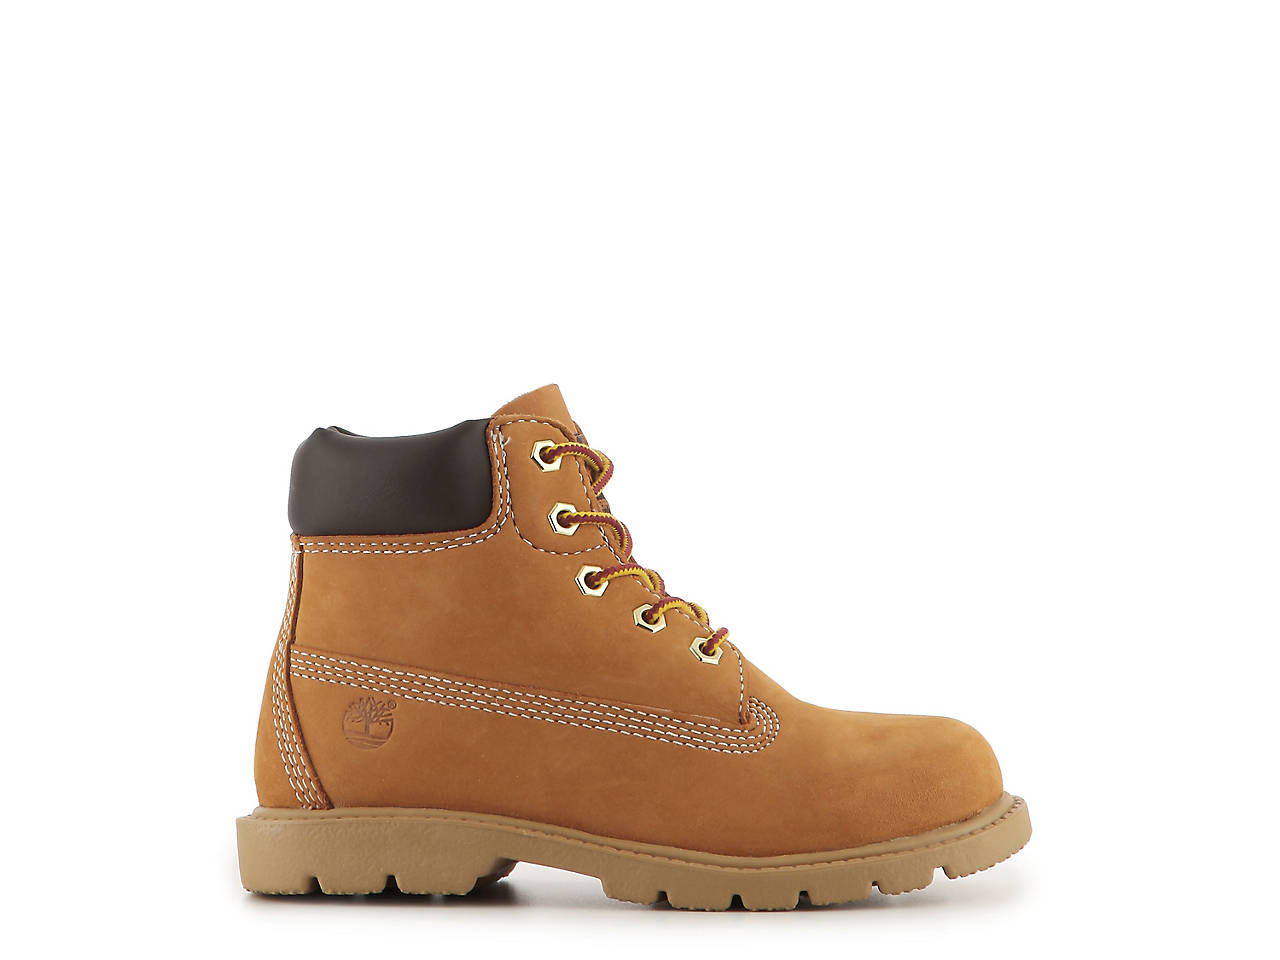 Timberland 6 Inch Boot Kids' Kids Shoes | DSW